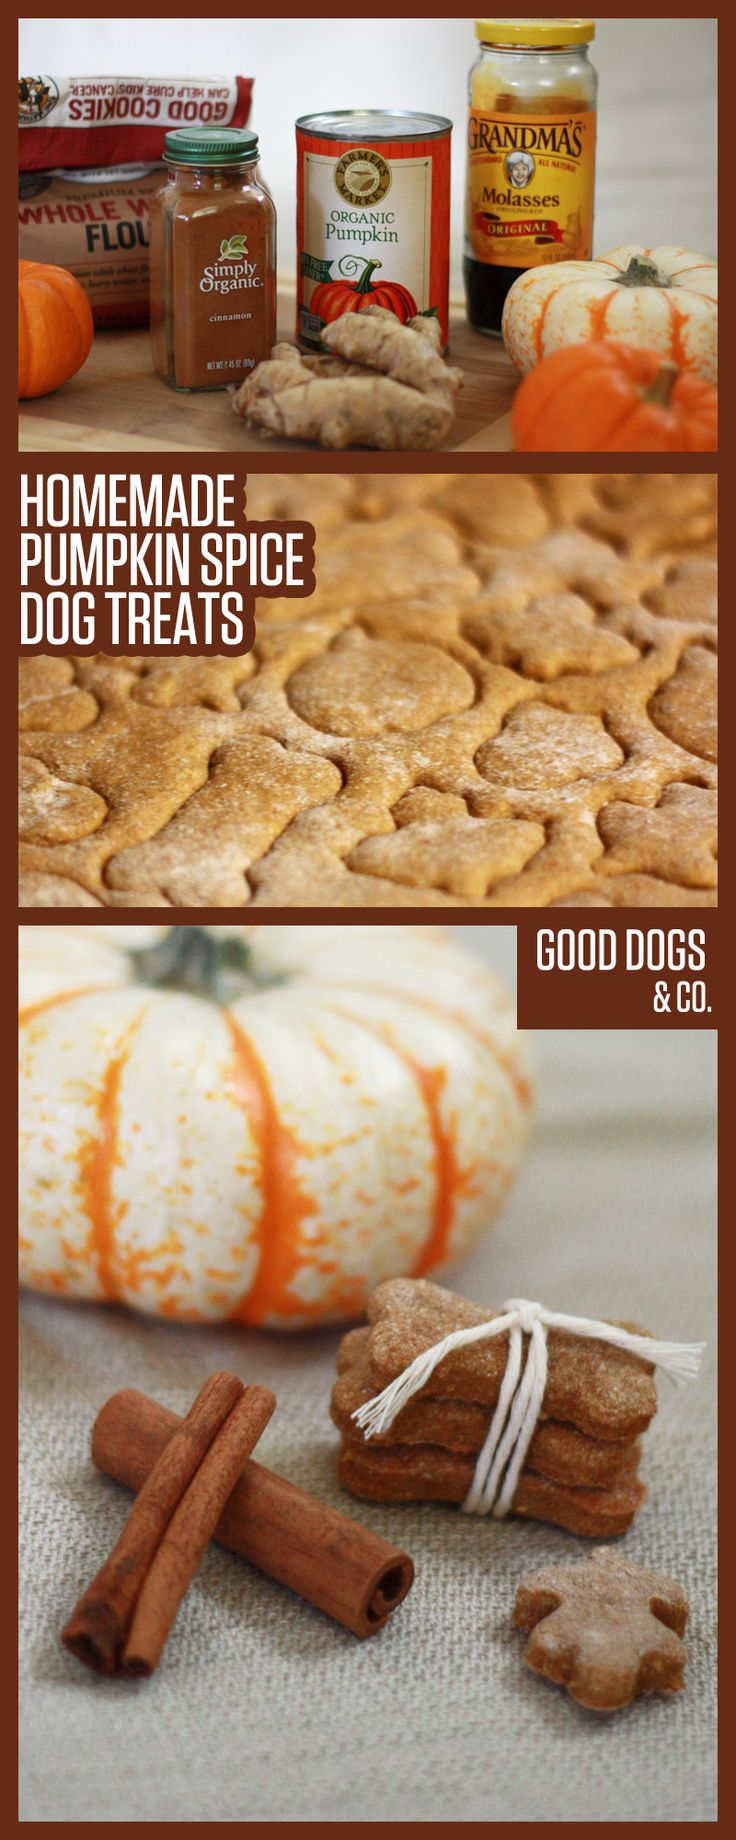 Pumpkin Spice Dog Treats just in time for PSL Season — that is, give your pup these treats while you enjoy your Pumpkin Spice Latte!